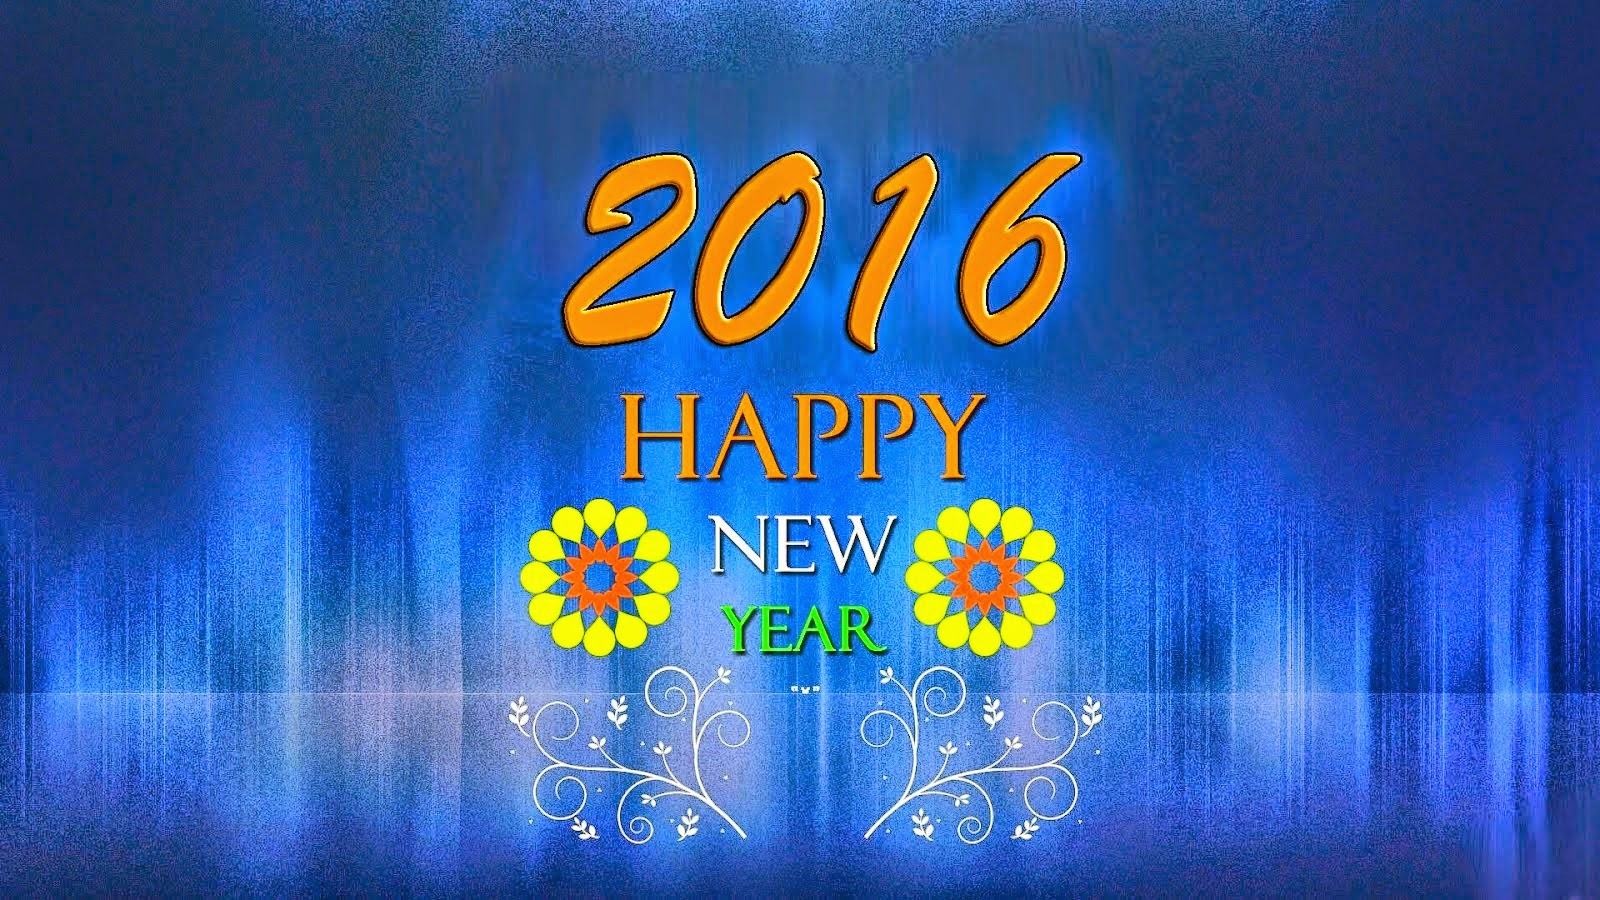 happy new year 2016 greeting cards,photos images stills,sms,best sms ...